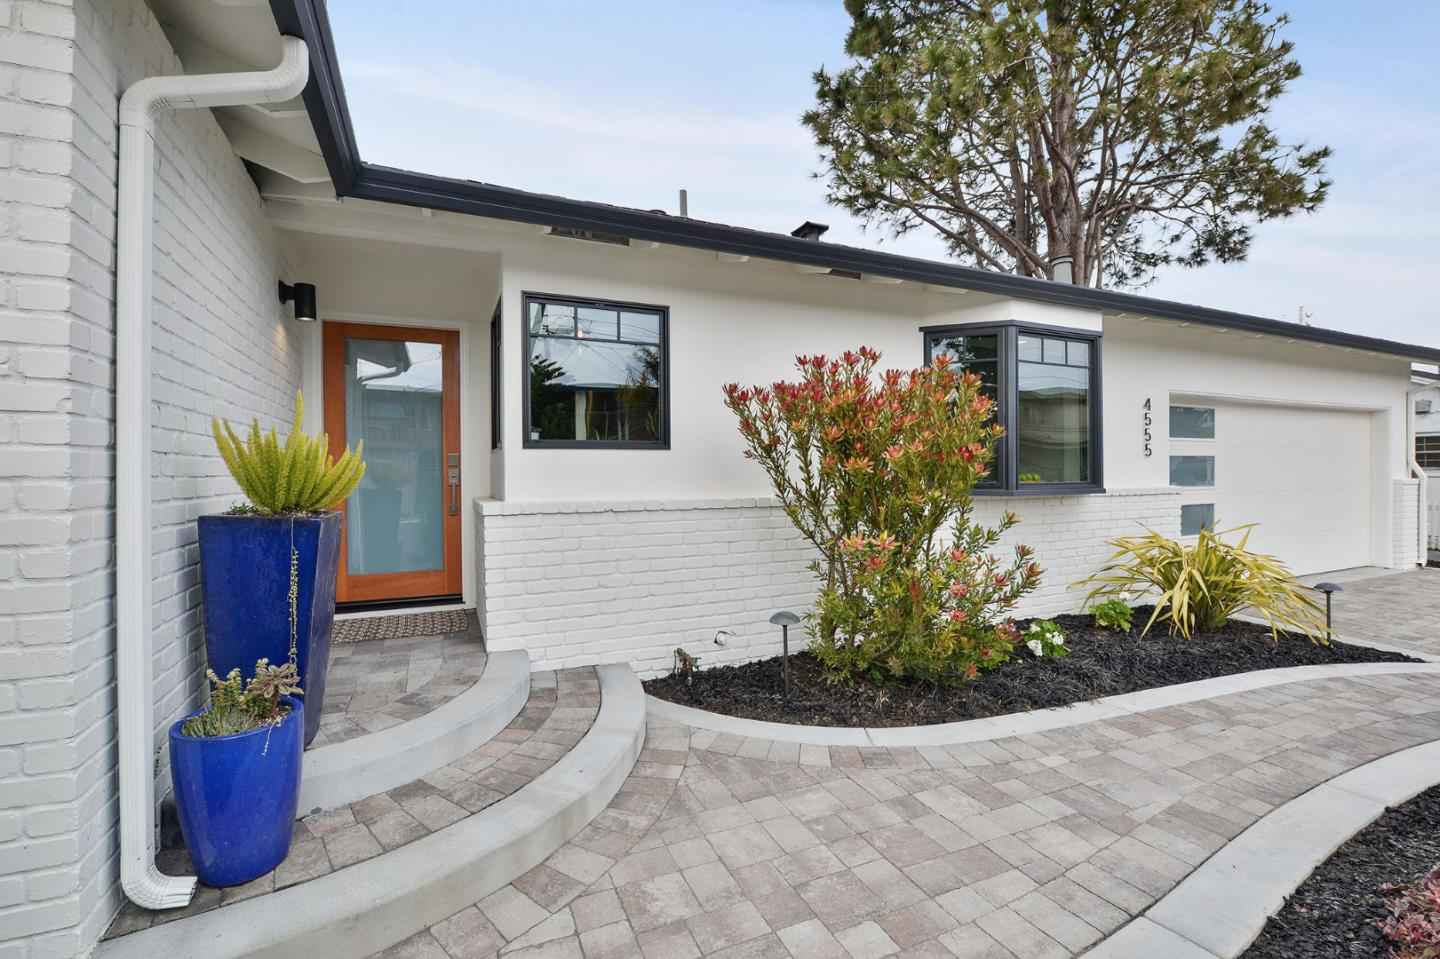 Detail Gallery Image 1 of 63 For 4555 Opal St, Capitola, CA, 95010 - 3 Beds | 2 Baths